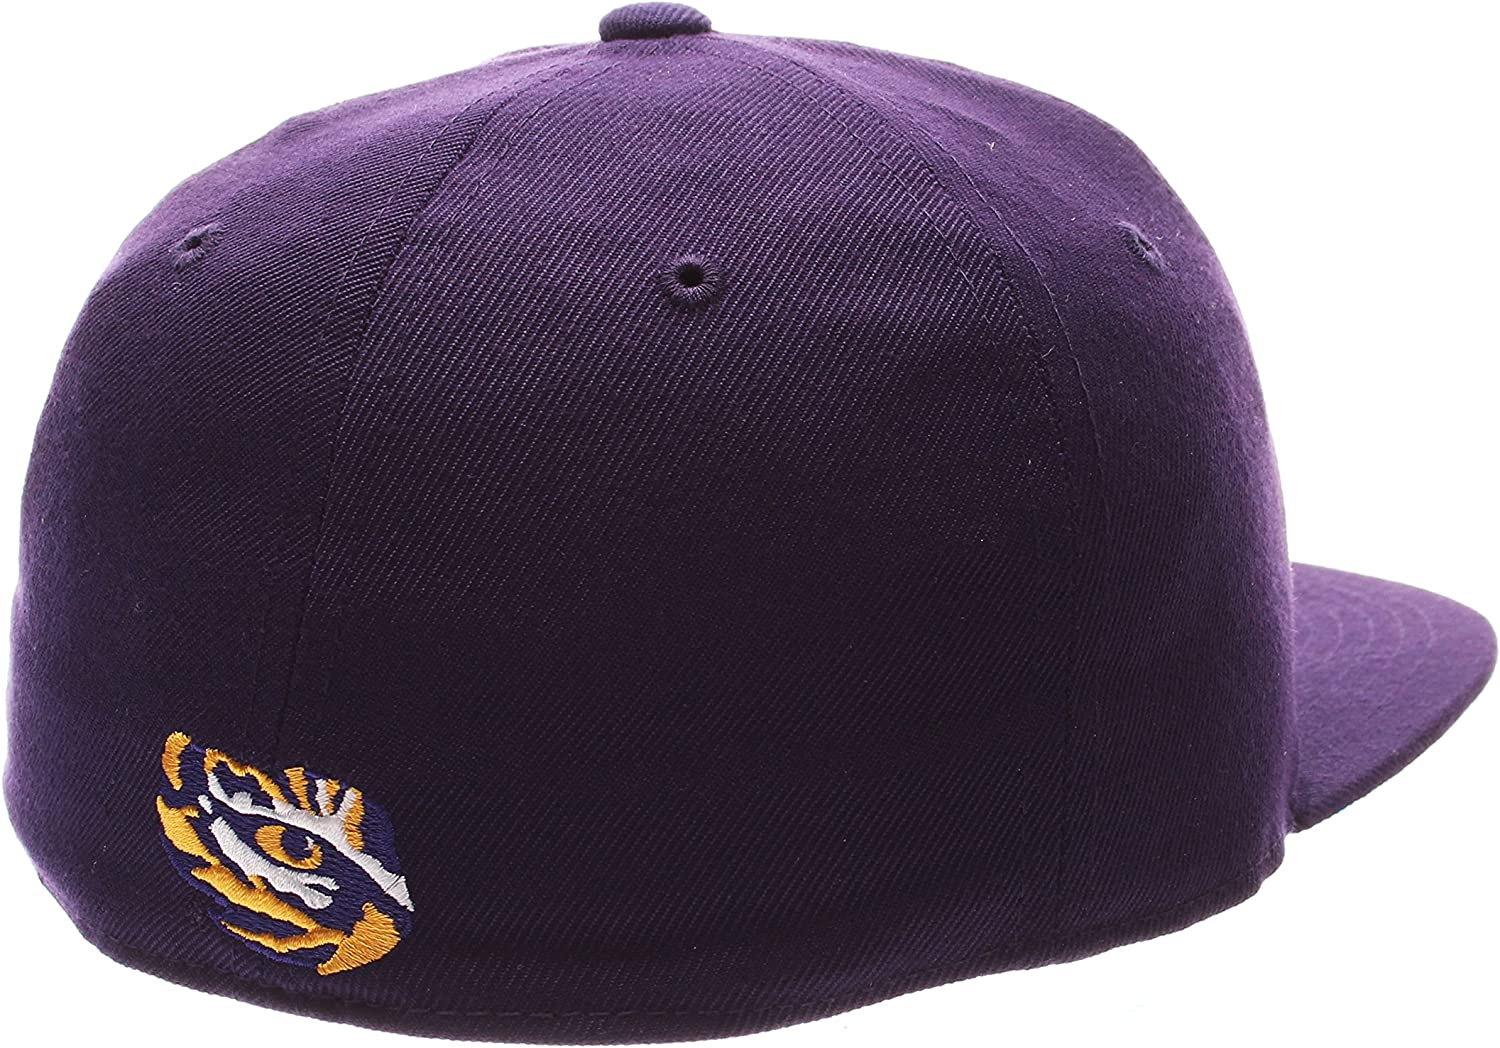 Purple NCAA Zephyr Lsu Tigers Mens M15 Fitted Hat Size 7 1//2